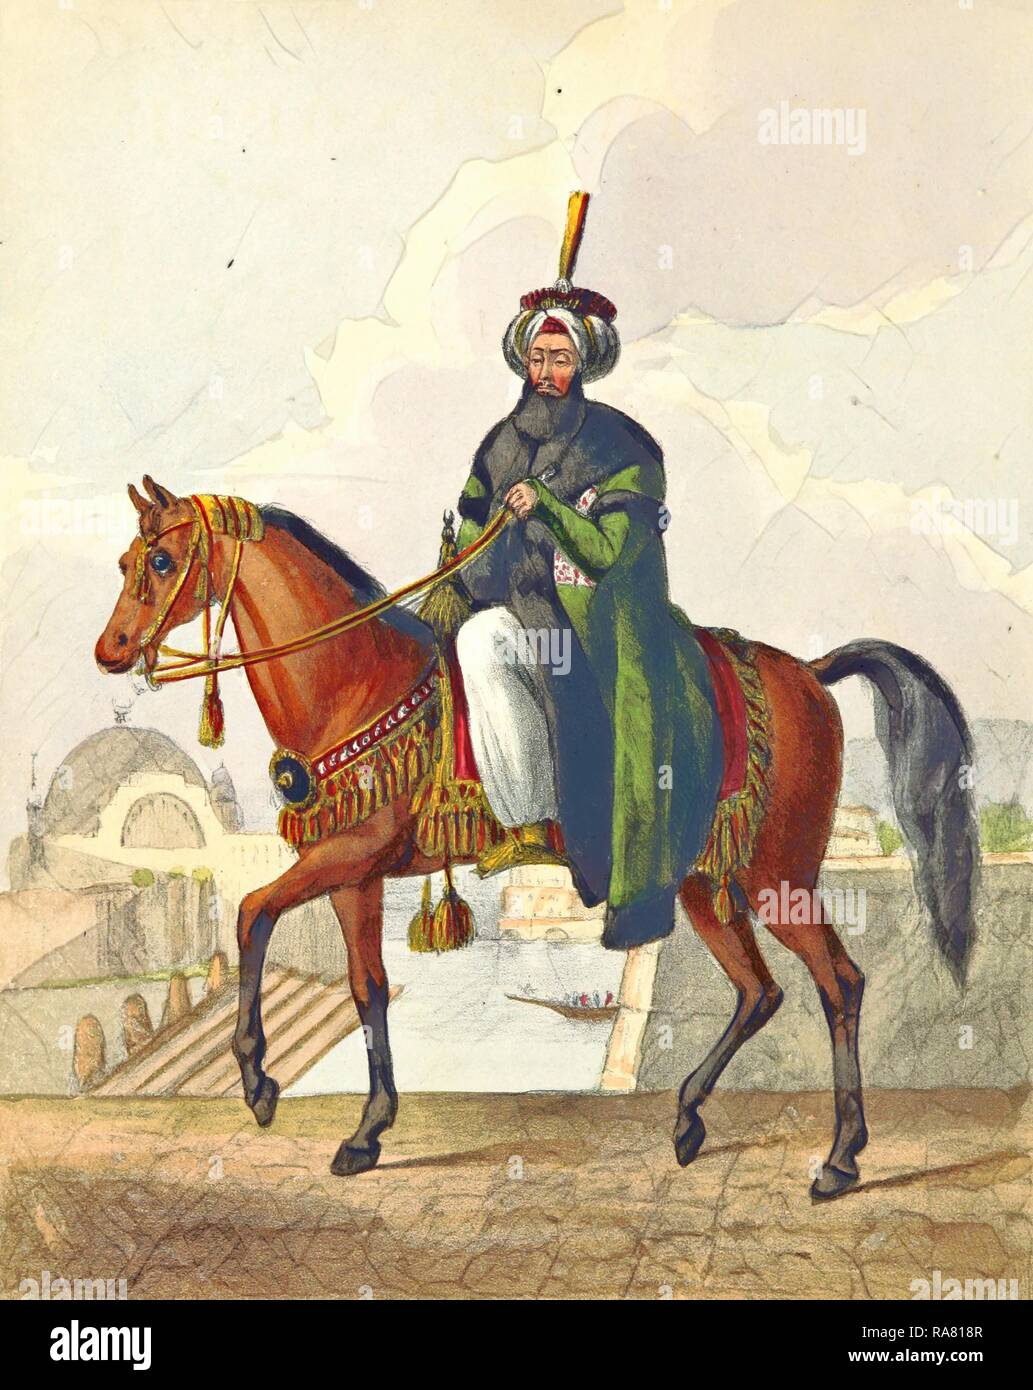 Sultan Mahmood, Constantinople in 1828, in the Turkish Capital and Provinces, Ottoman Empire, 19th century engraving reimagined - Stock Image